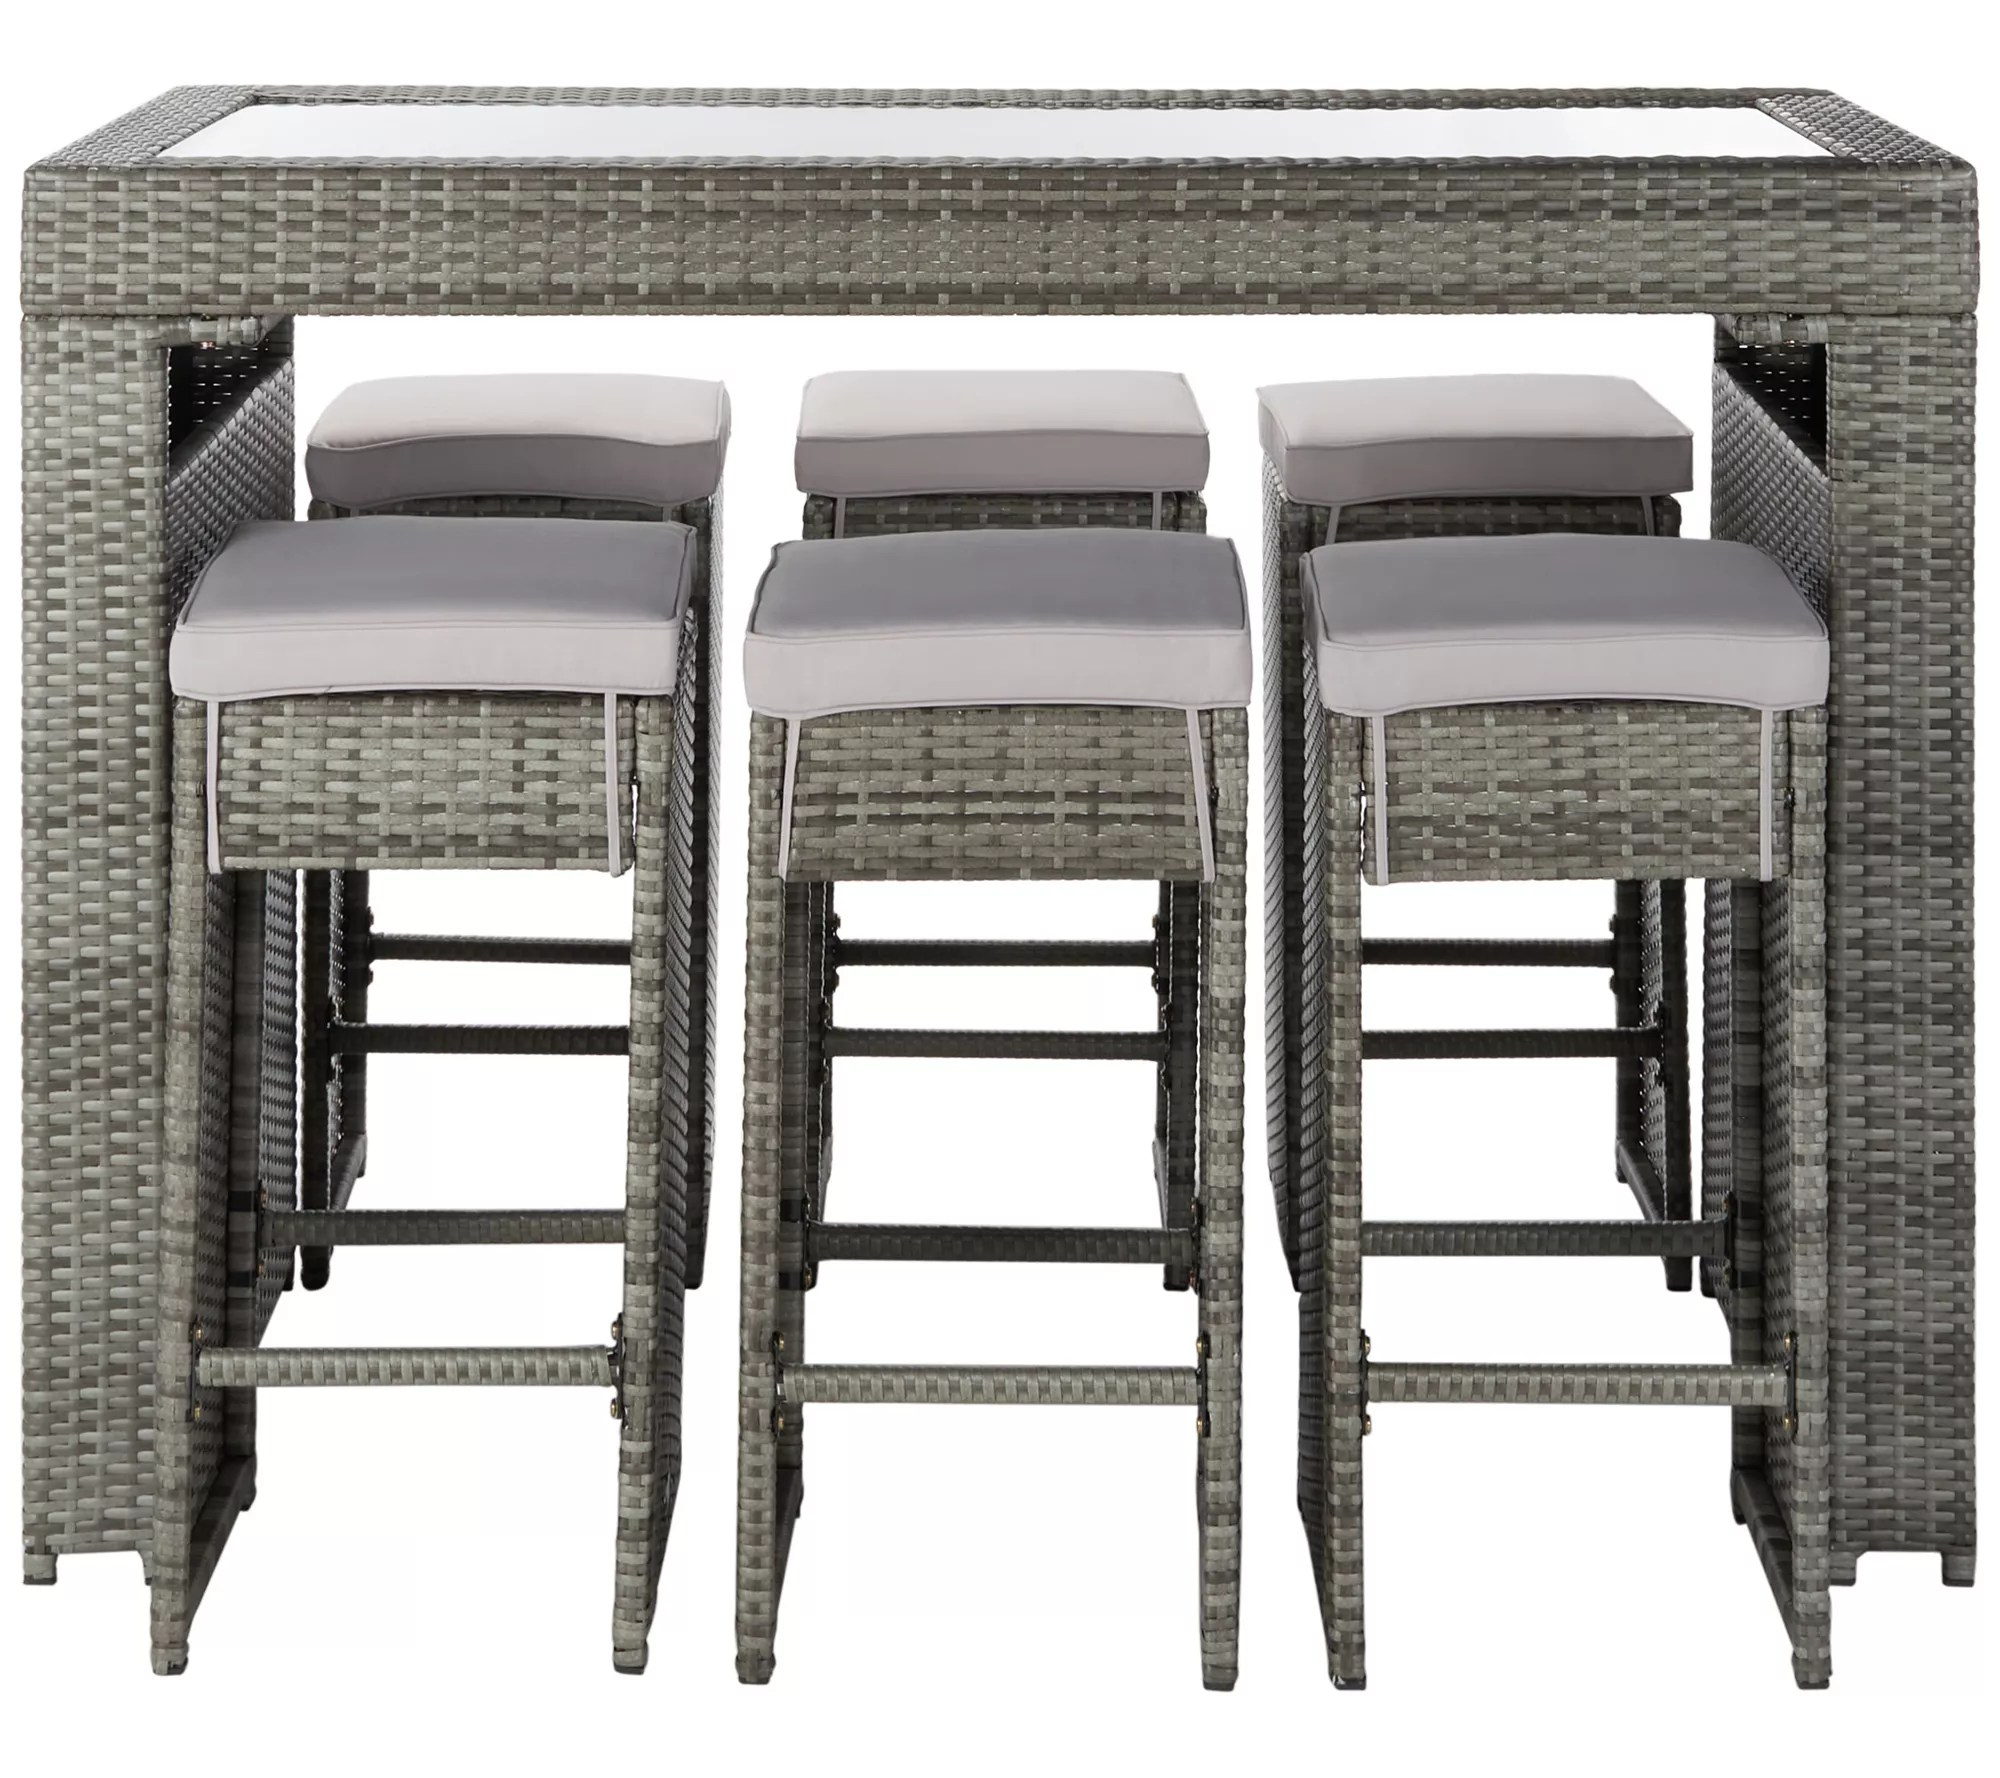 https www qvc com for the home outdoor living outdoor furniture n 1nyj3 c html